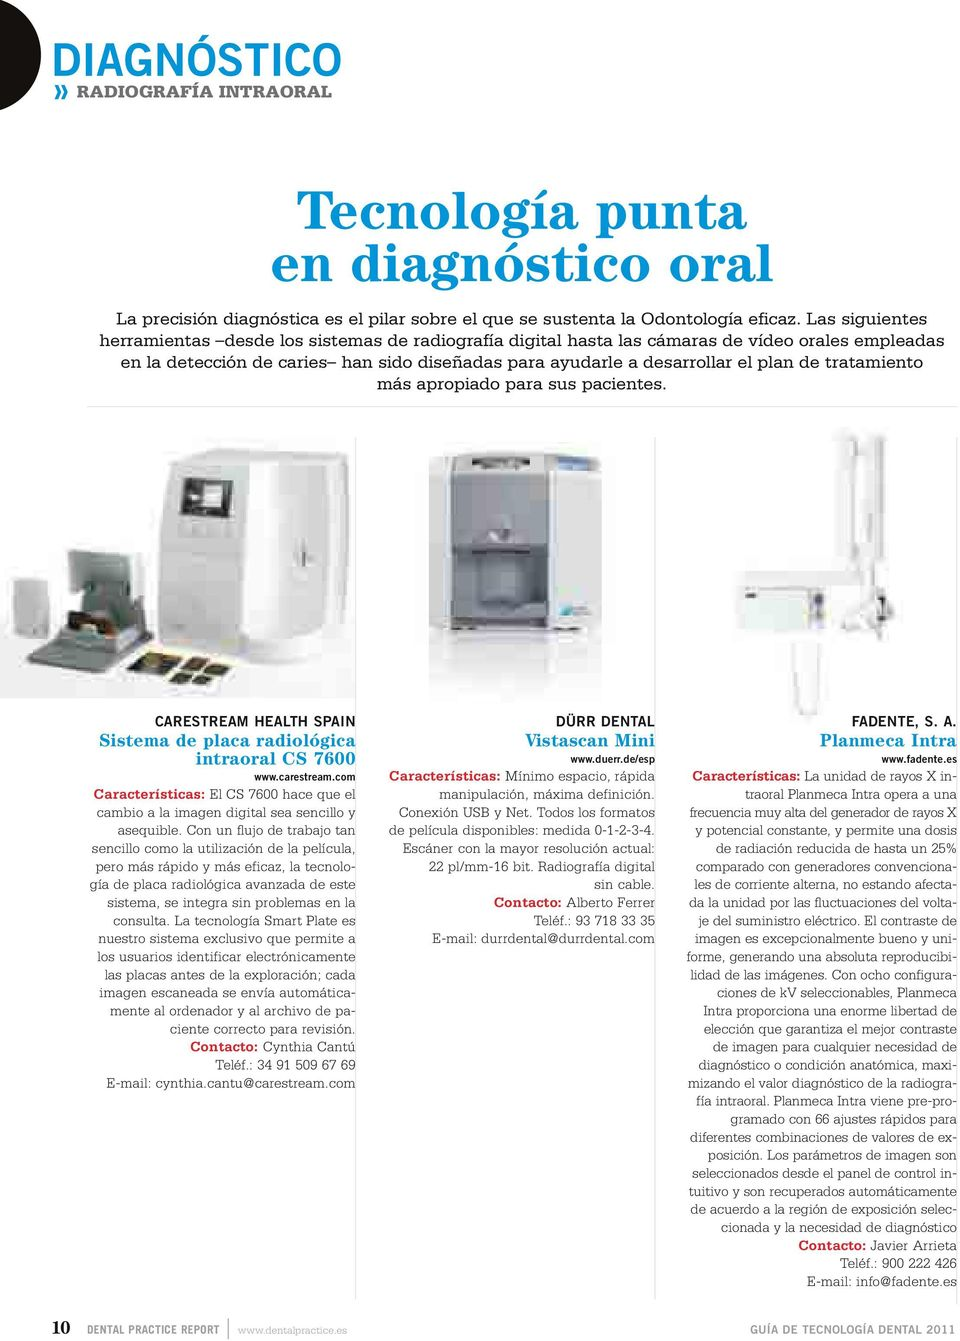 tratamiento más apropiado para sus pacientes. CARESTREAM HEALTH SPAIN Sistema de placa radiológica intraoral CS 7600 www.carestream.